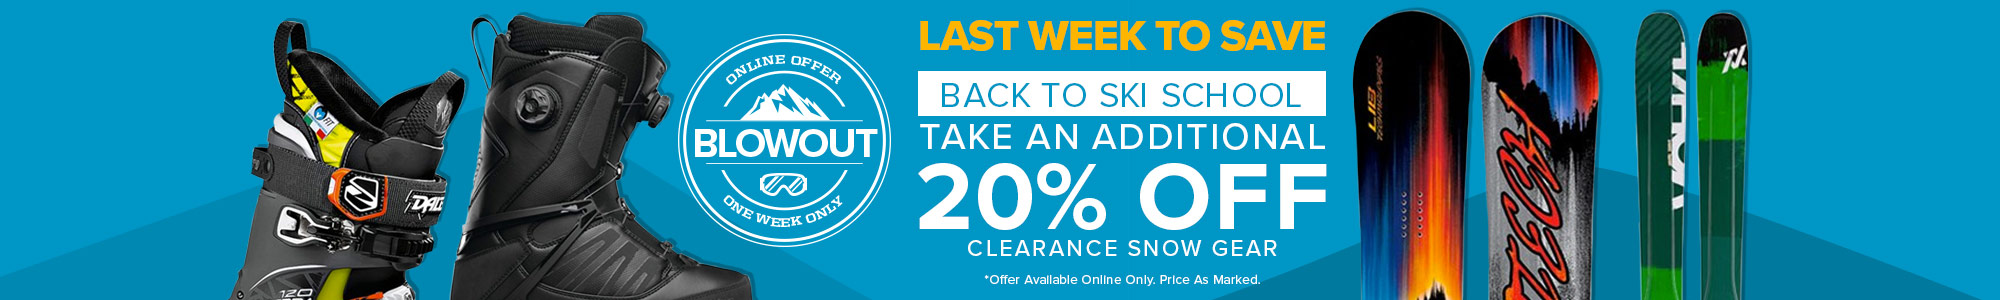 Last Week to Save - Back to Ski School Take an additional 20% off snow gear.